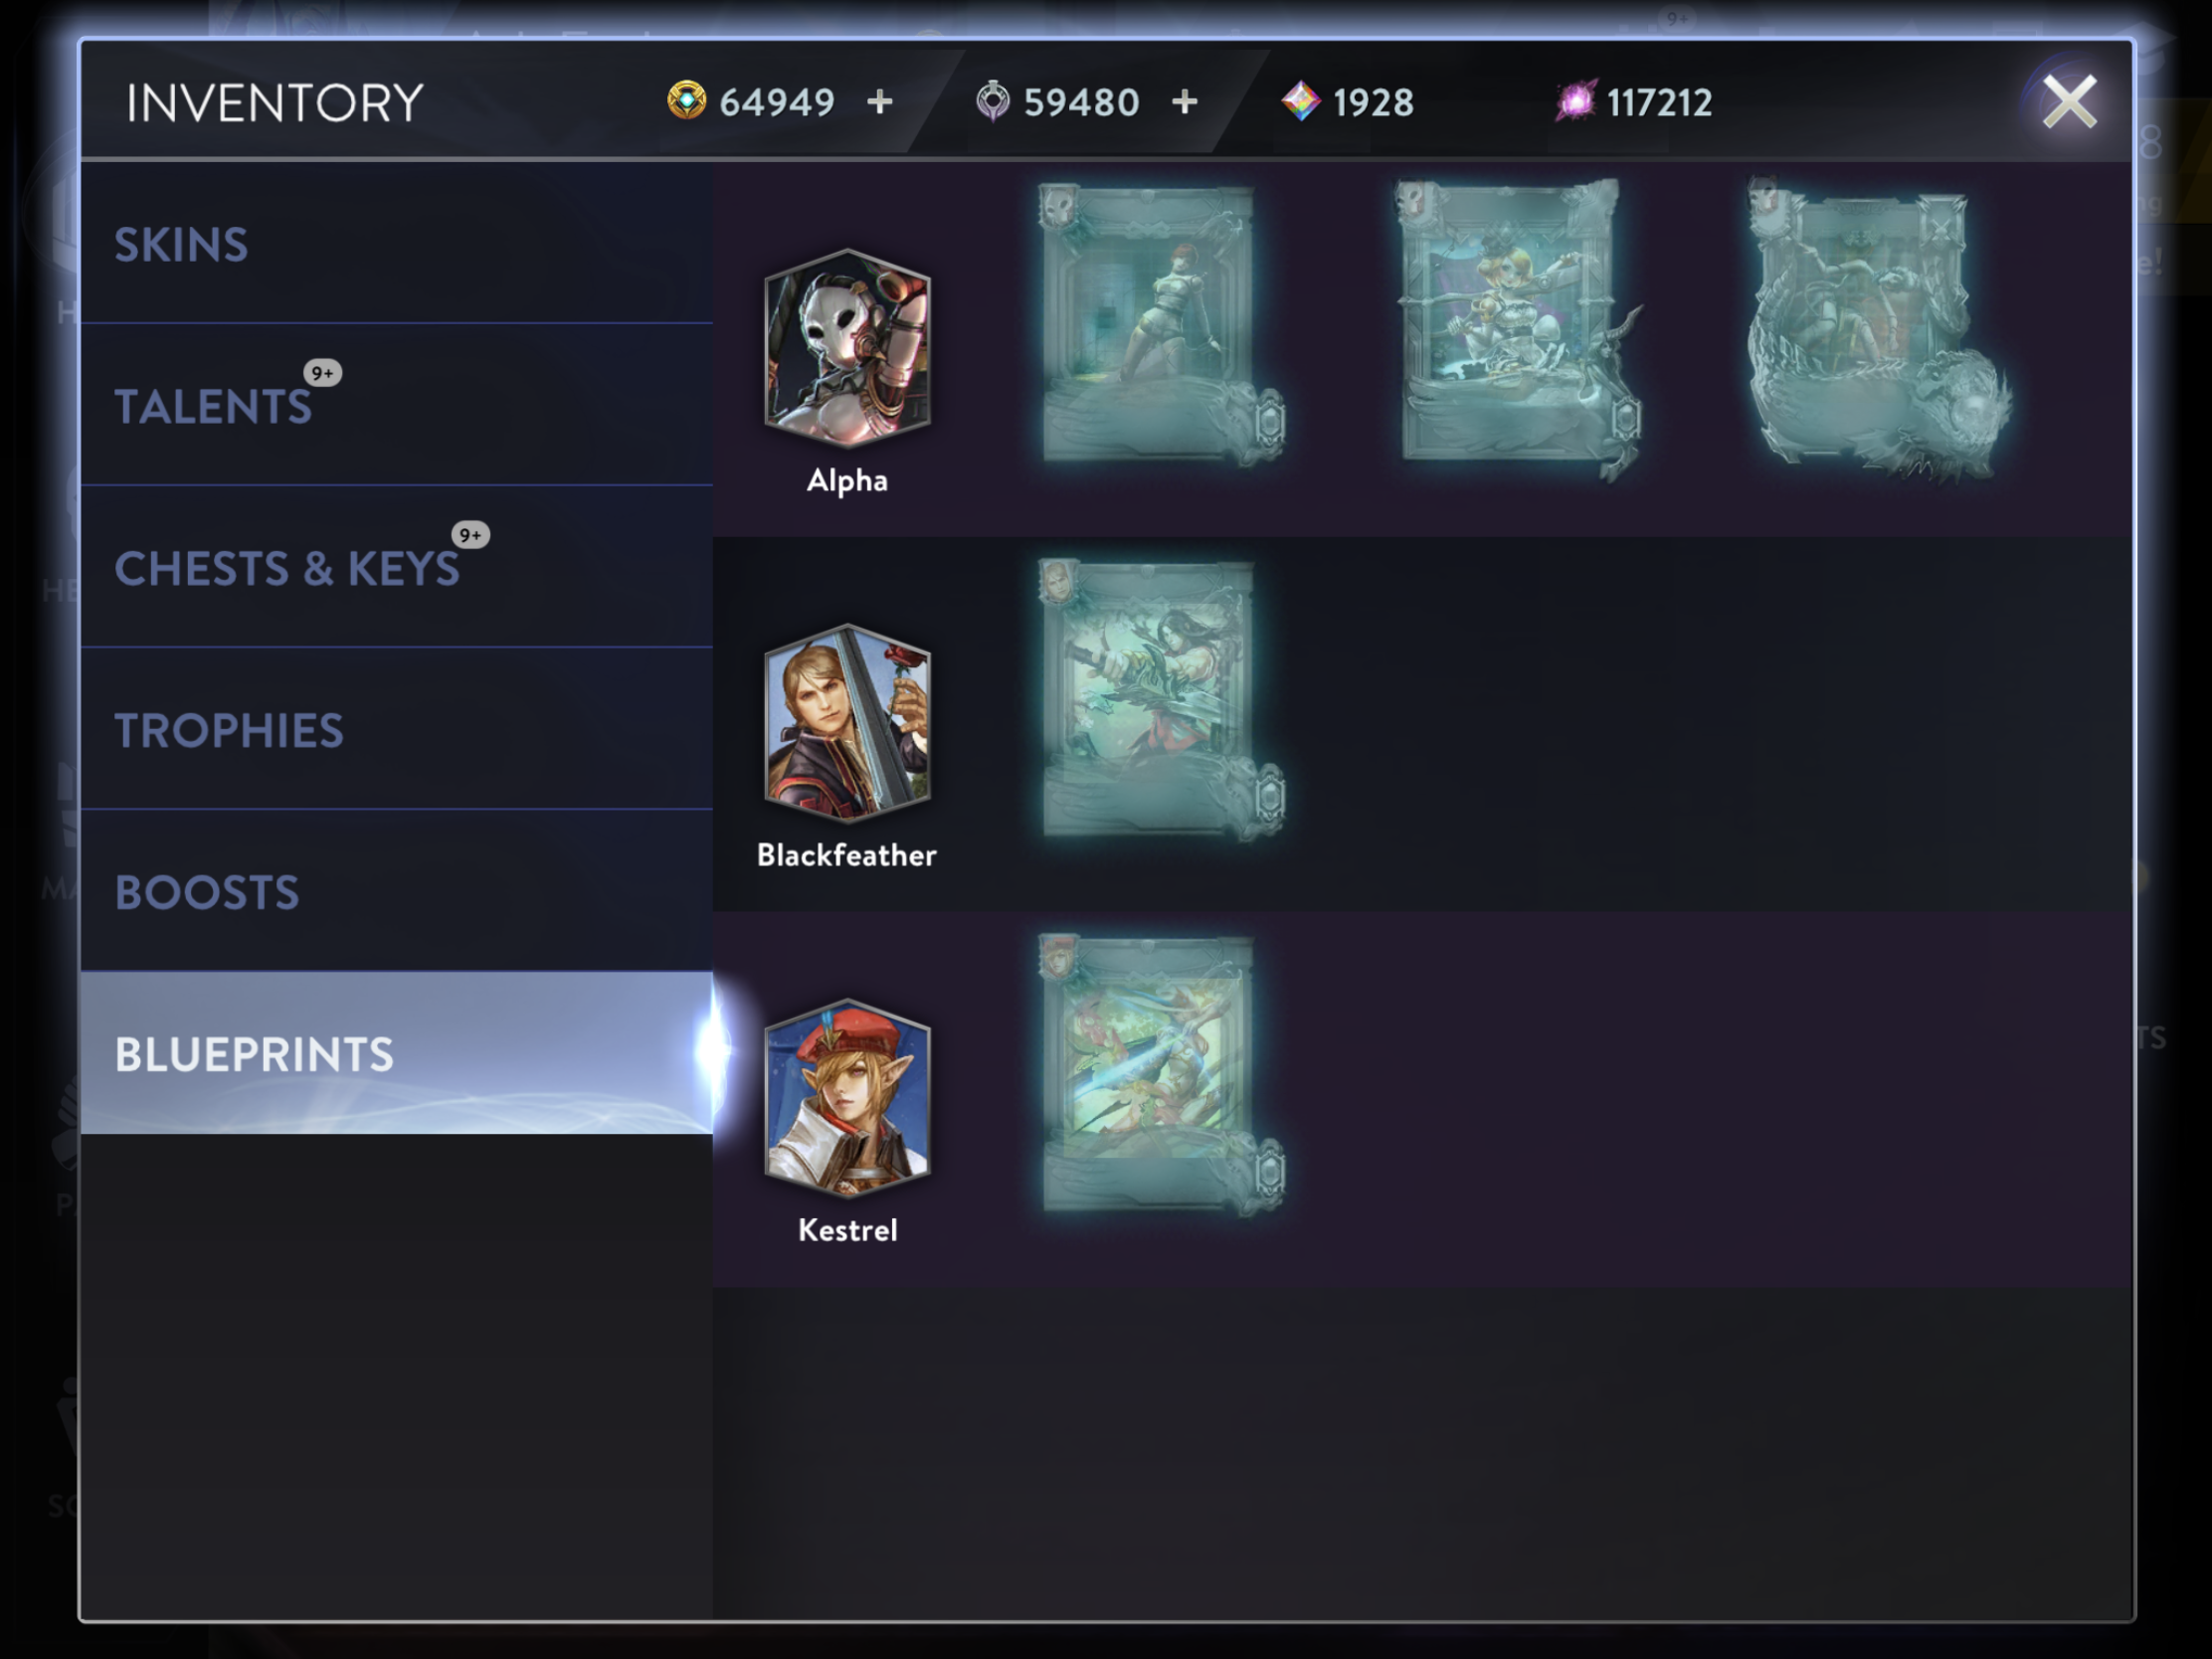 Events Archives Vainglory Indihome Sky Top Up 3 Gb From There Youll Have An At A Glance View Of The Things In Your Inventory Including Tab That Shows You Only Blueprints Own